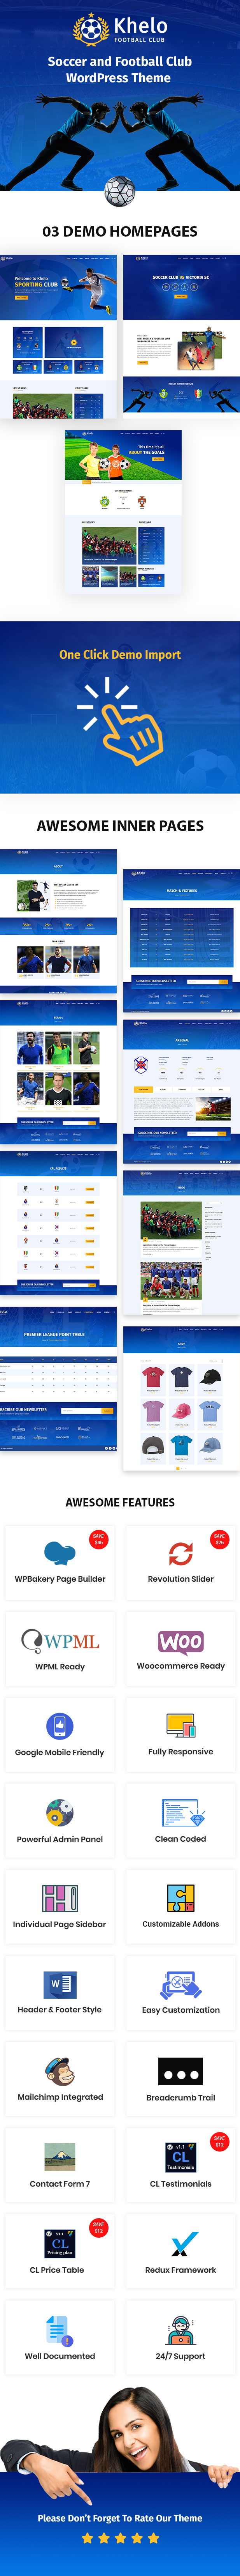 Khelo - Soccer & Football Club WordPress Theme - 3